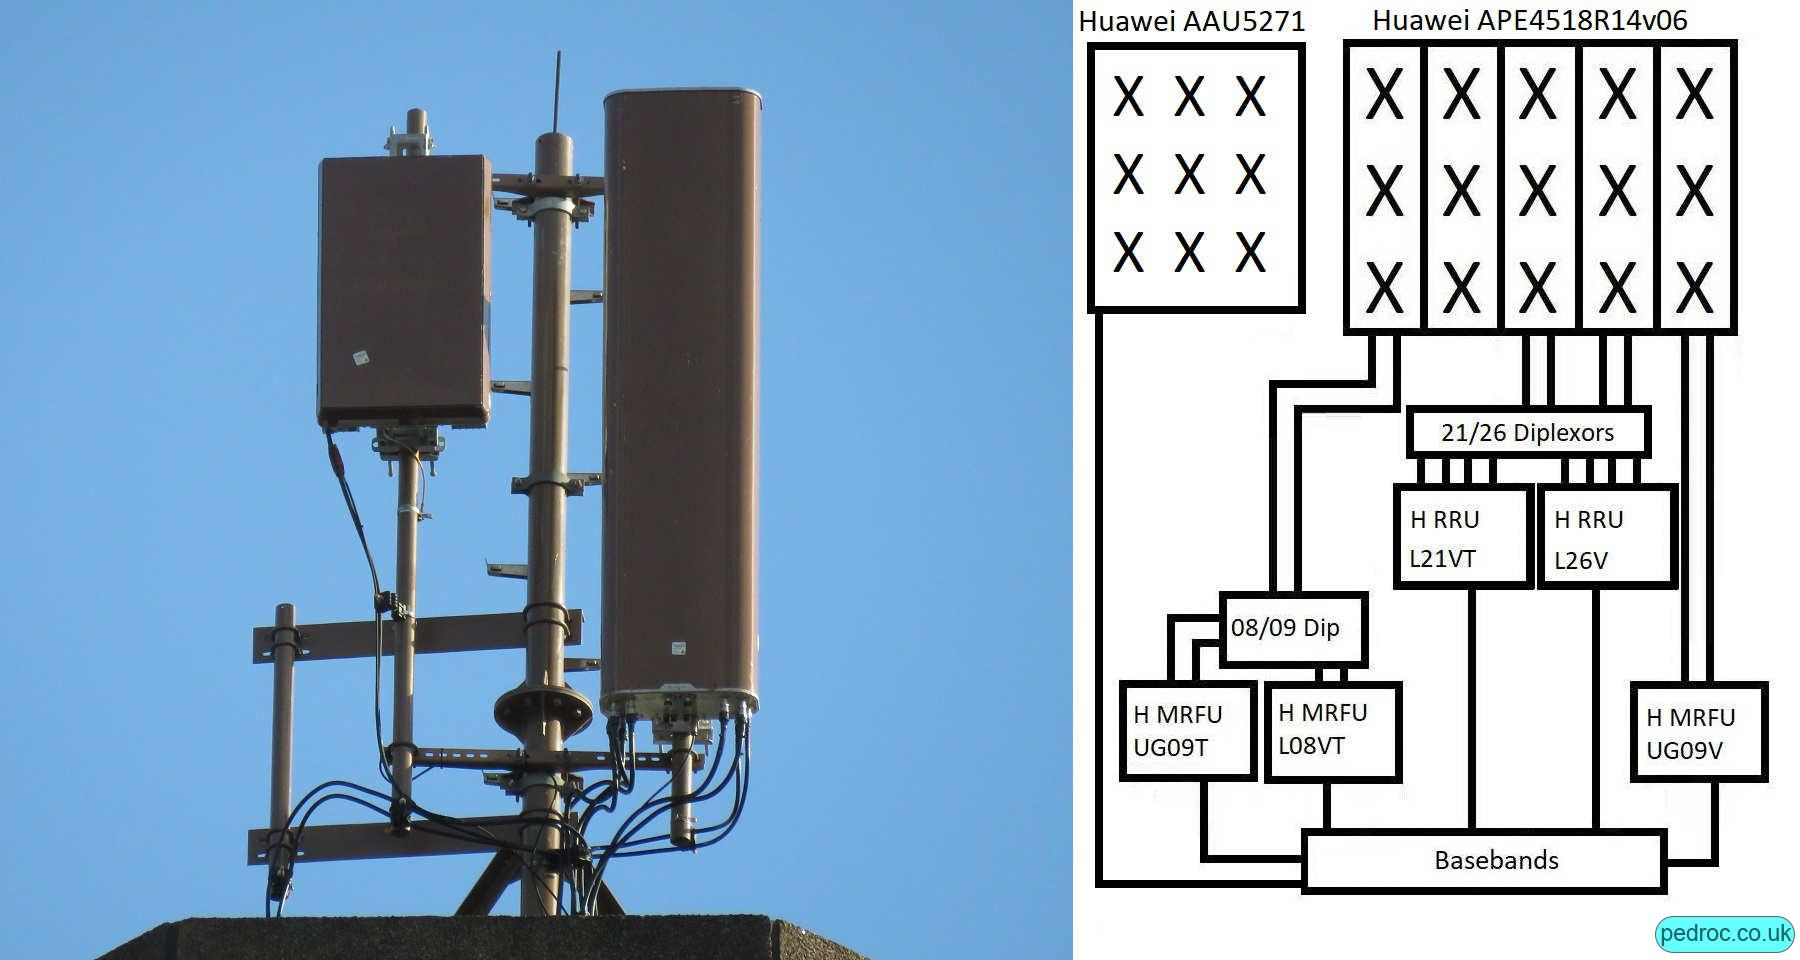 Vodafone Huawei extremely high site with Huawei APE4518R14v07 antennas and Huawei Massive MIMO.